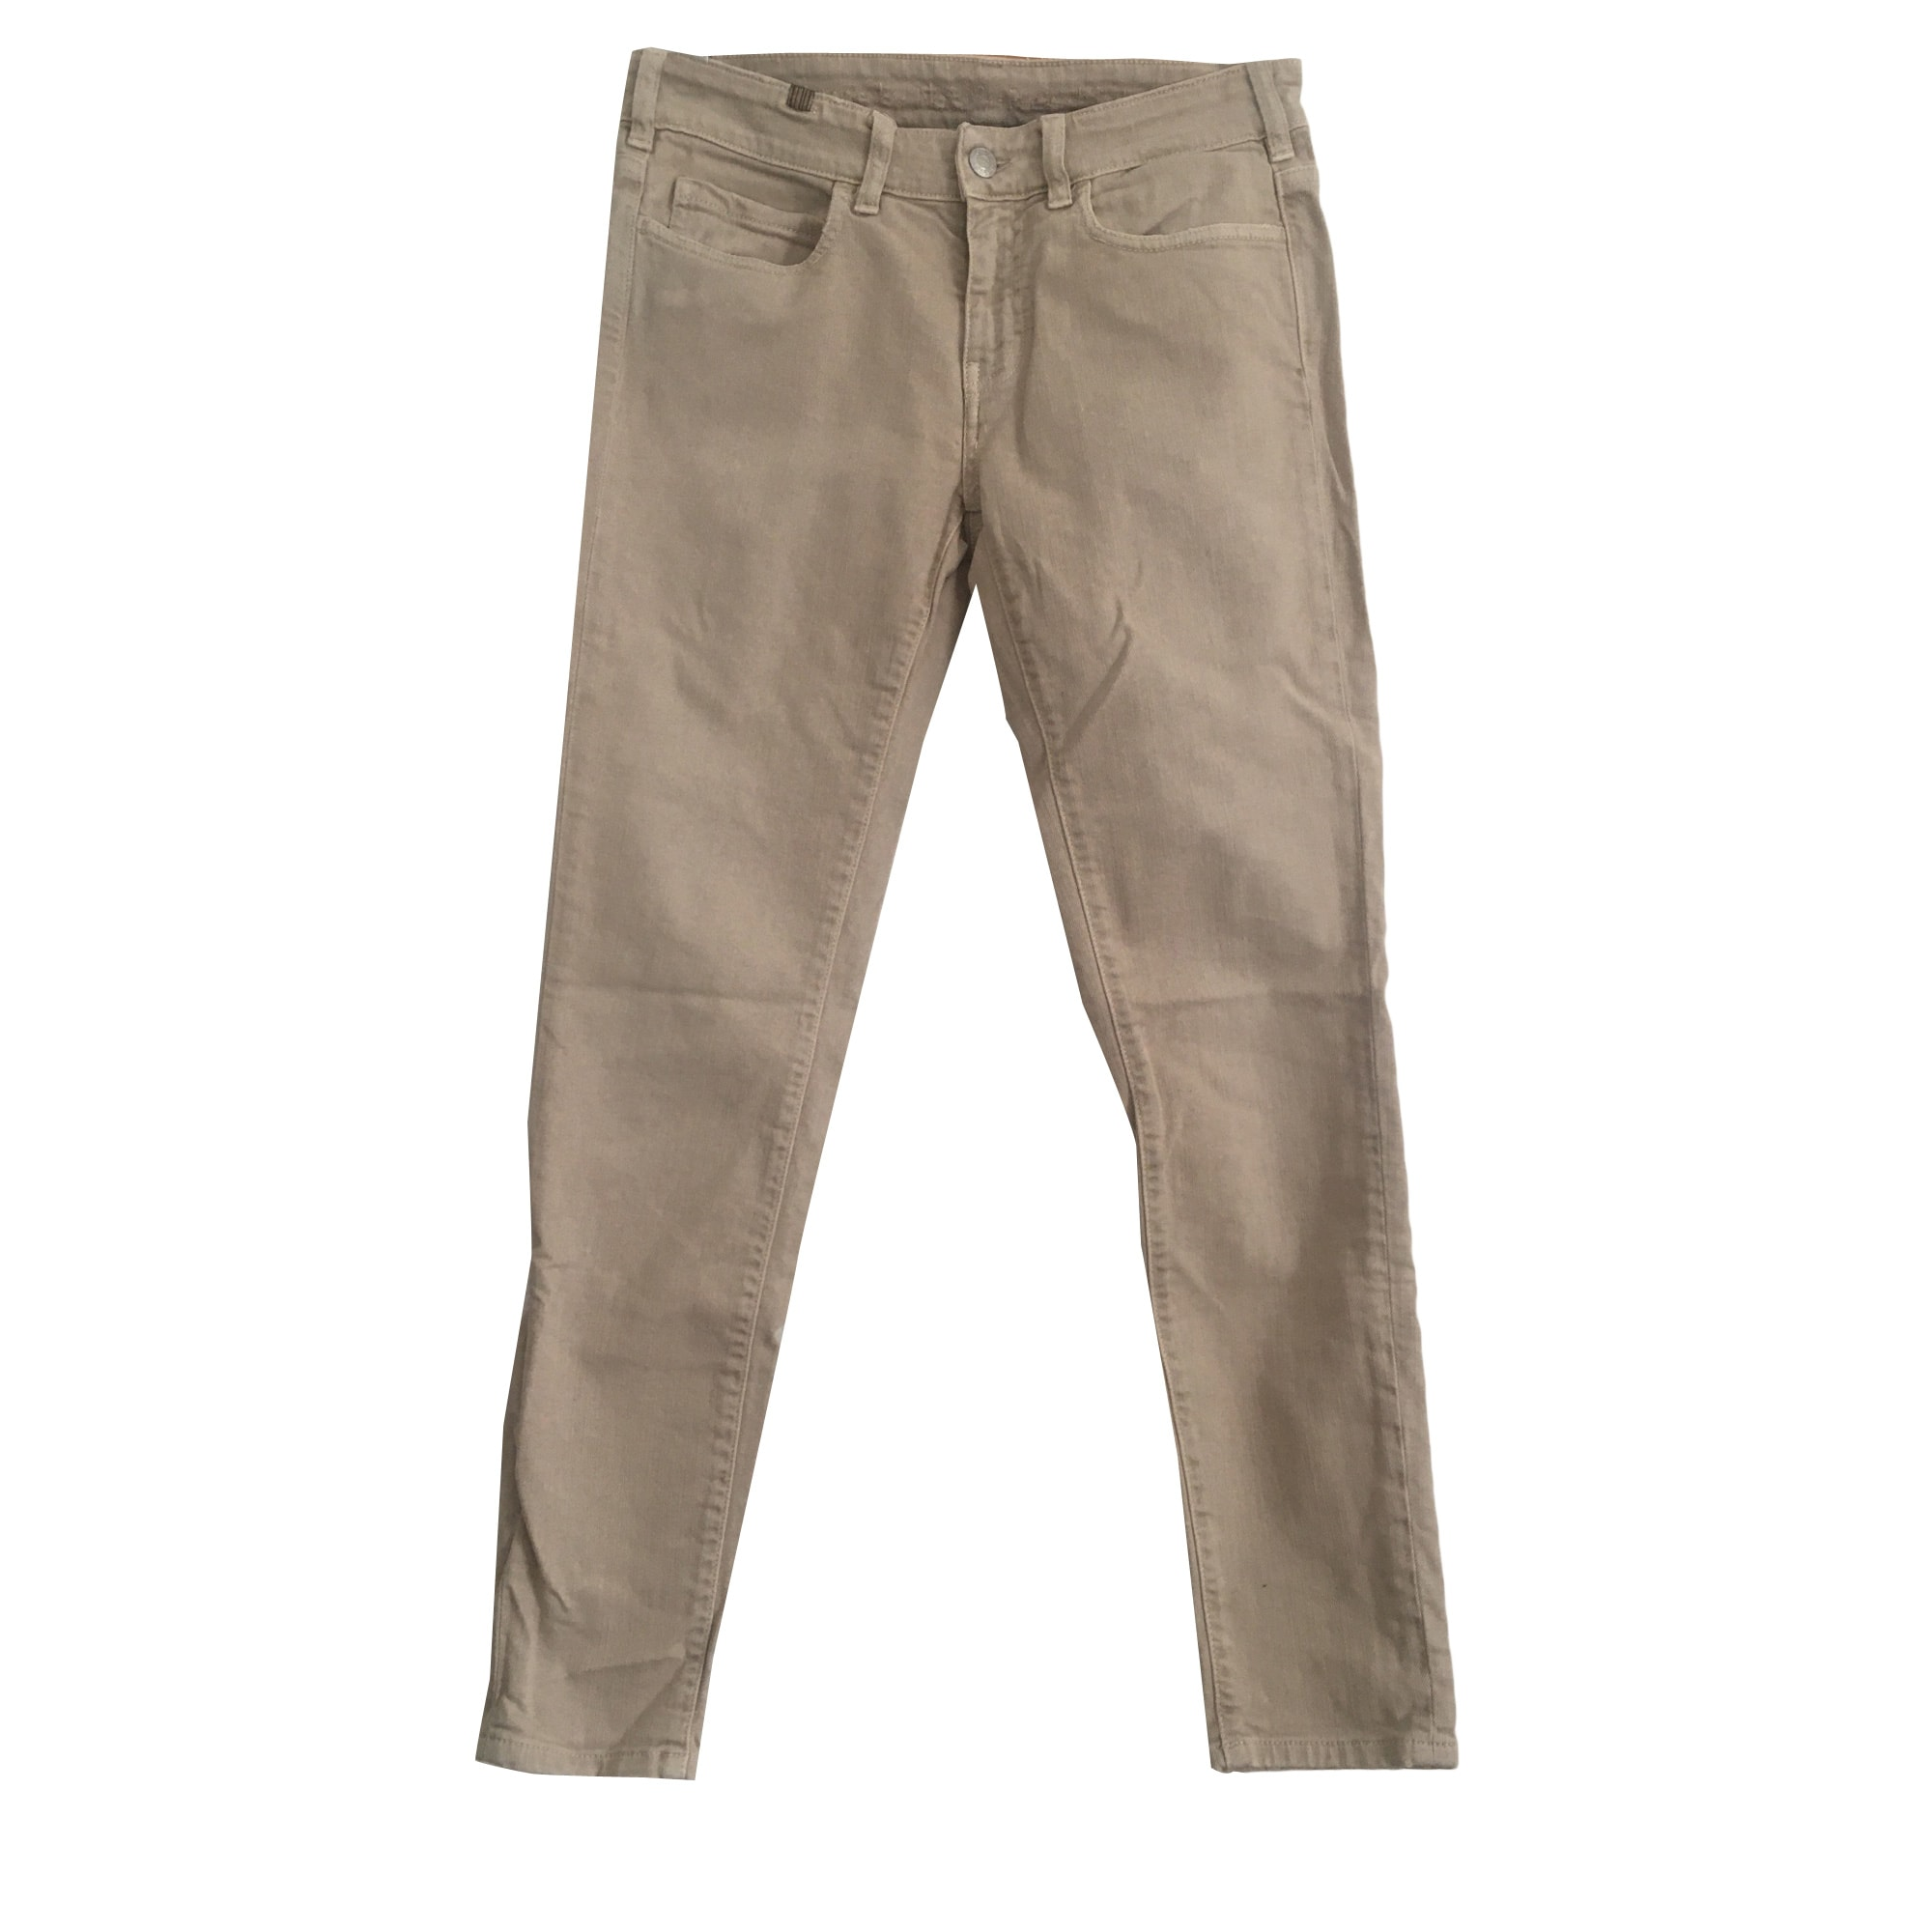 Jeans slim NOTIFY Beige, camel